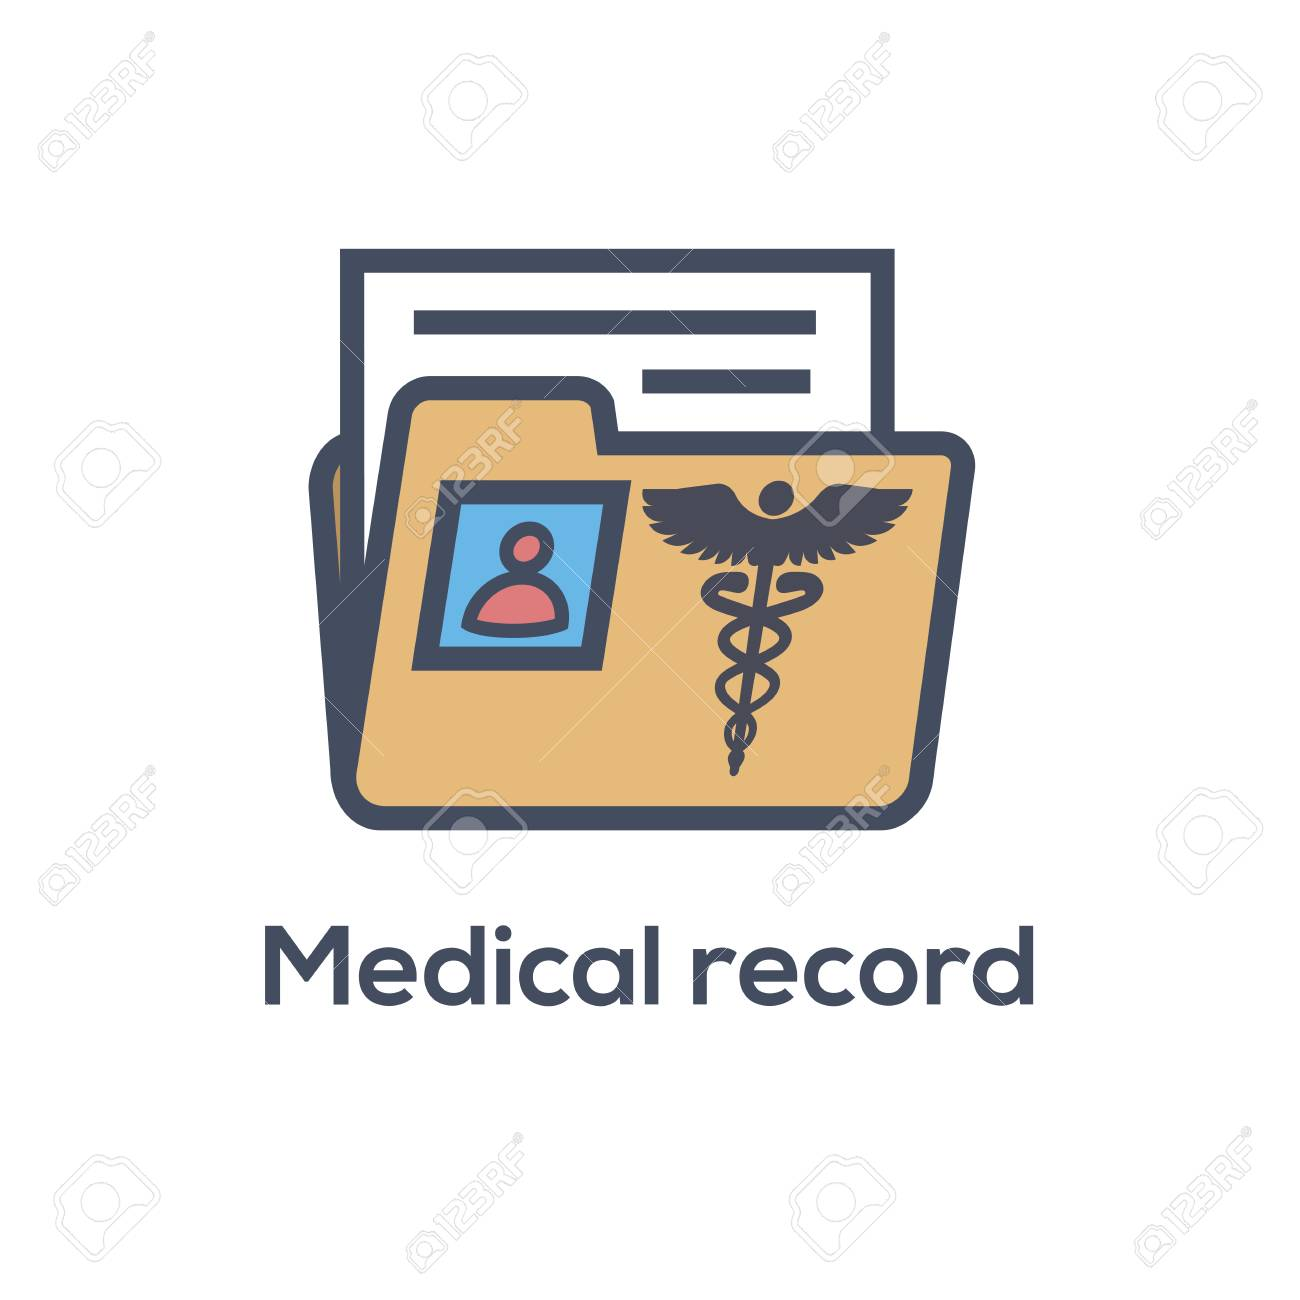 medical records icon caduceus and personal health record imagery